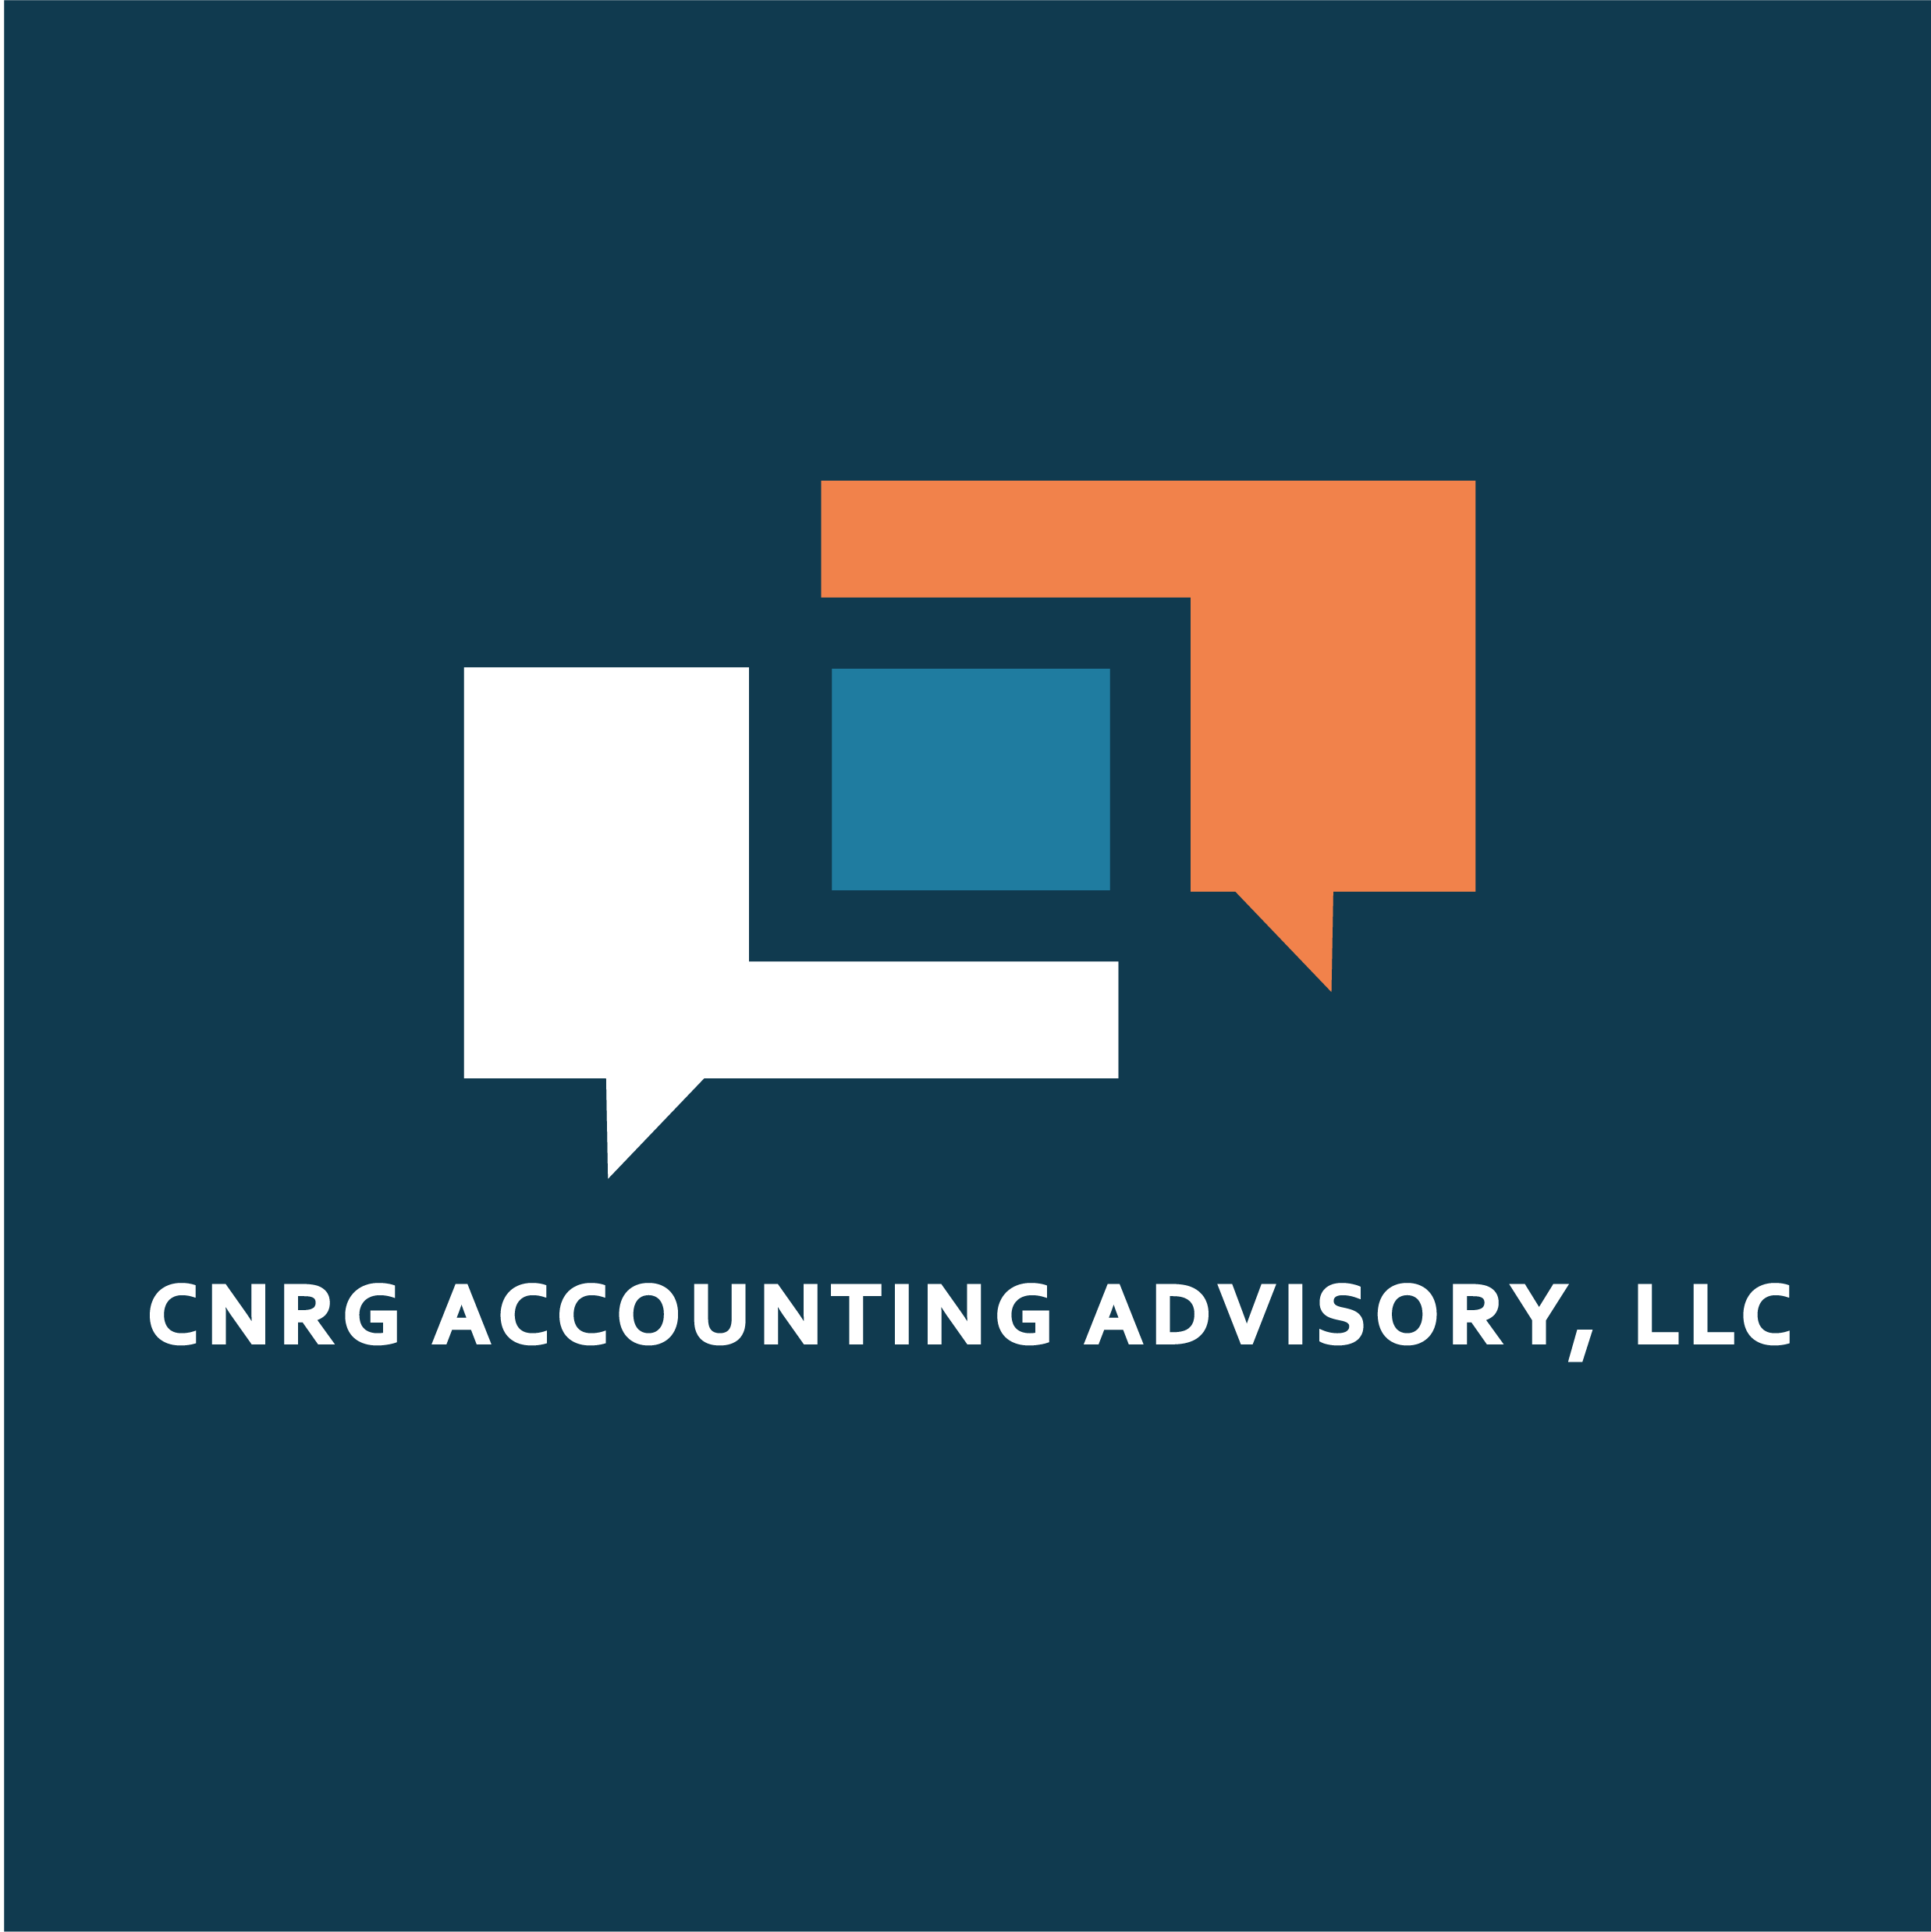 CNRG Accounting Advisory